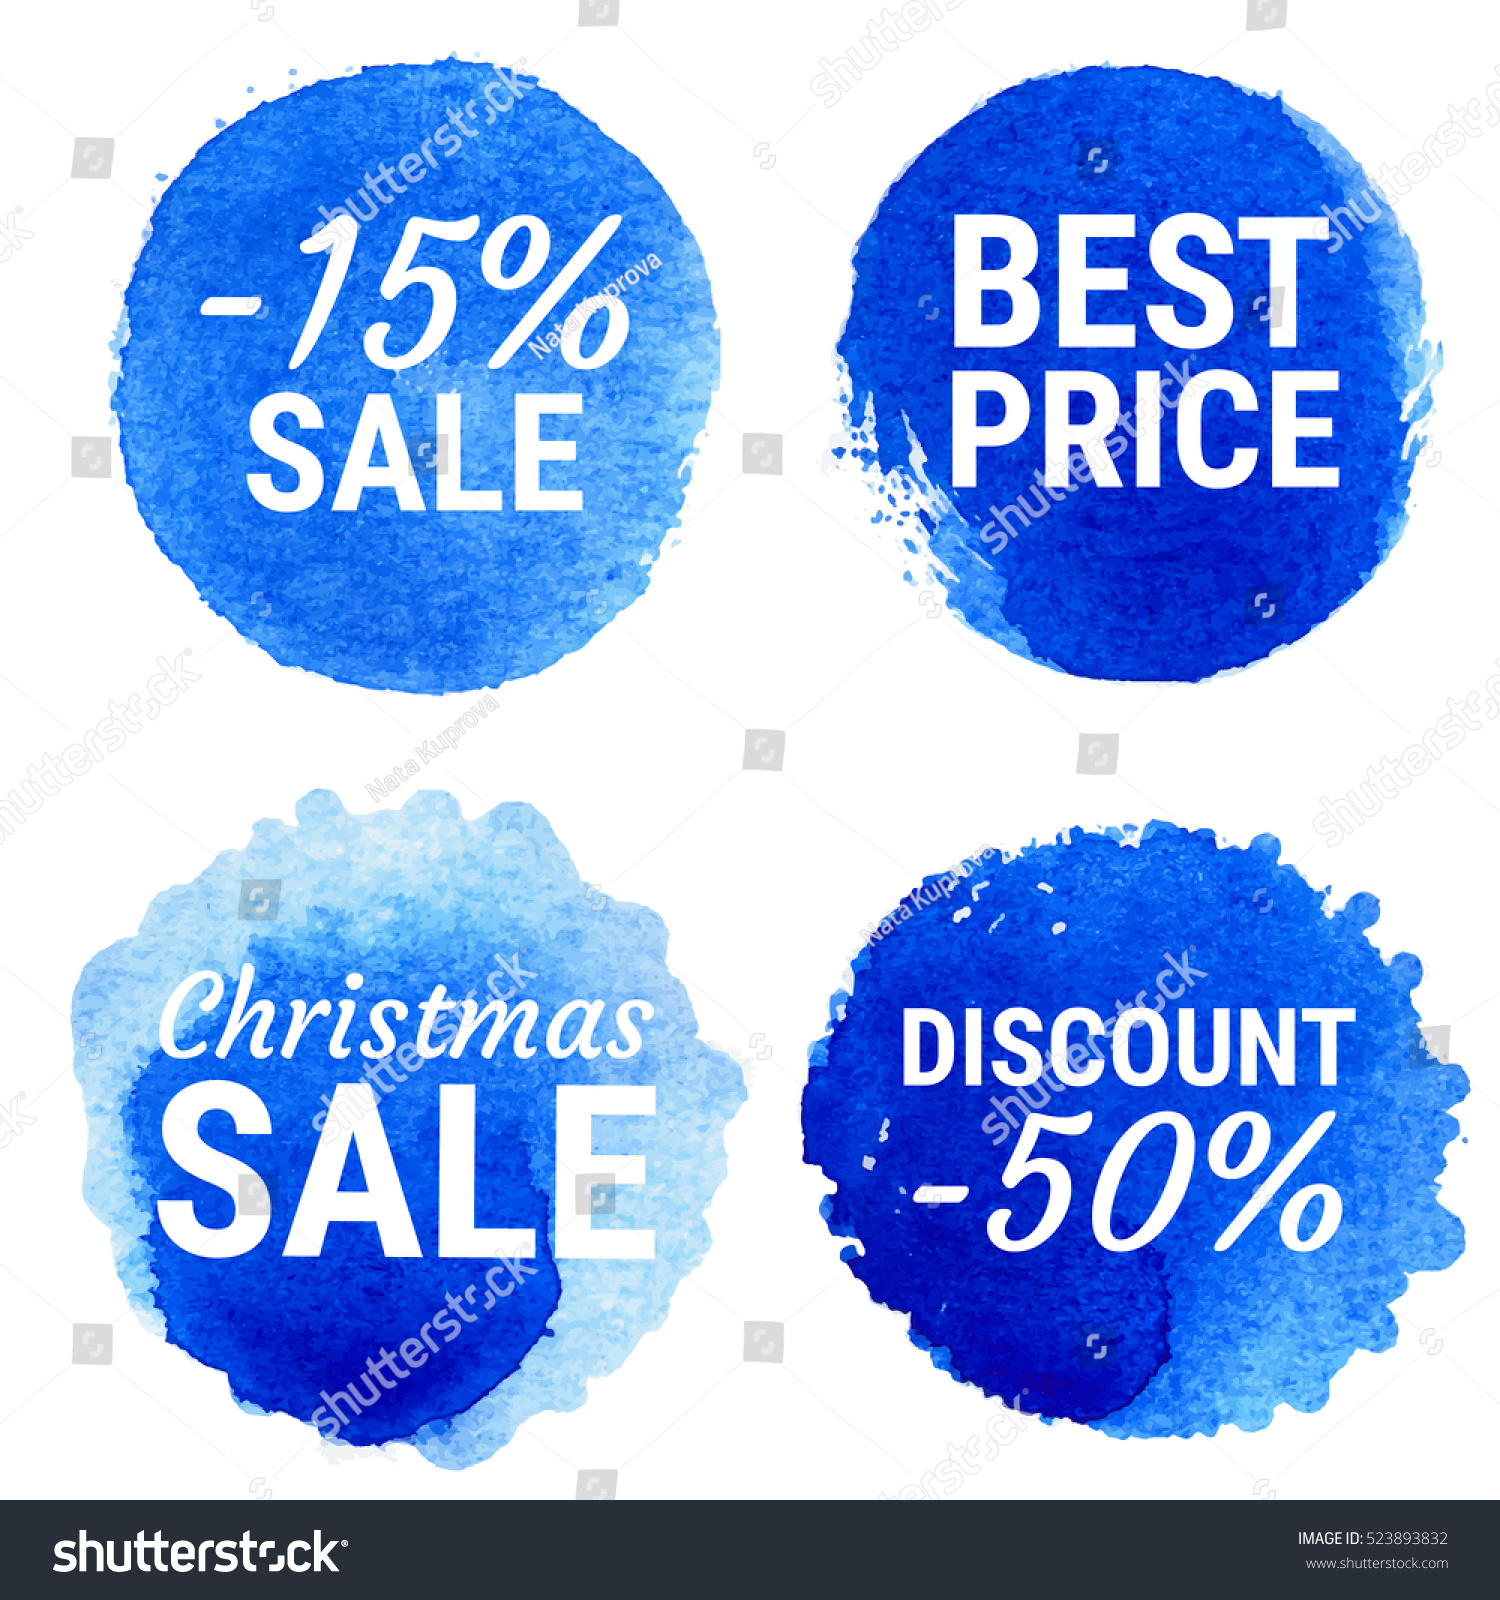 Vector Christmas Sale Best Price Round Stock Vector